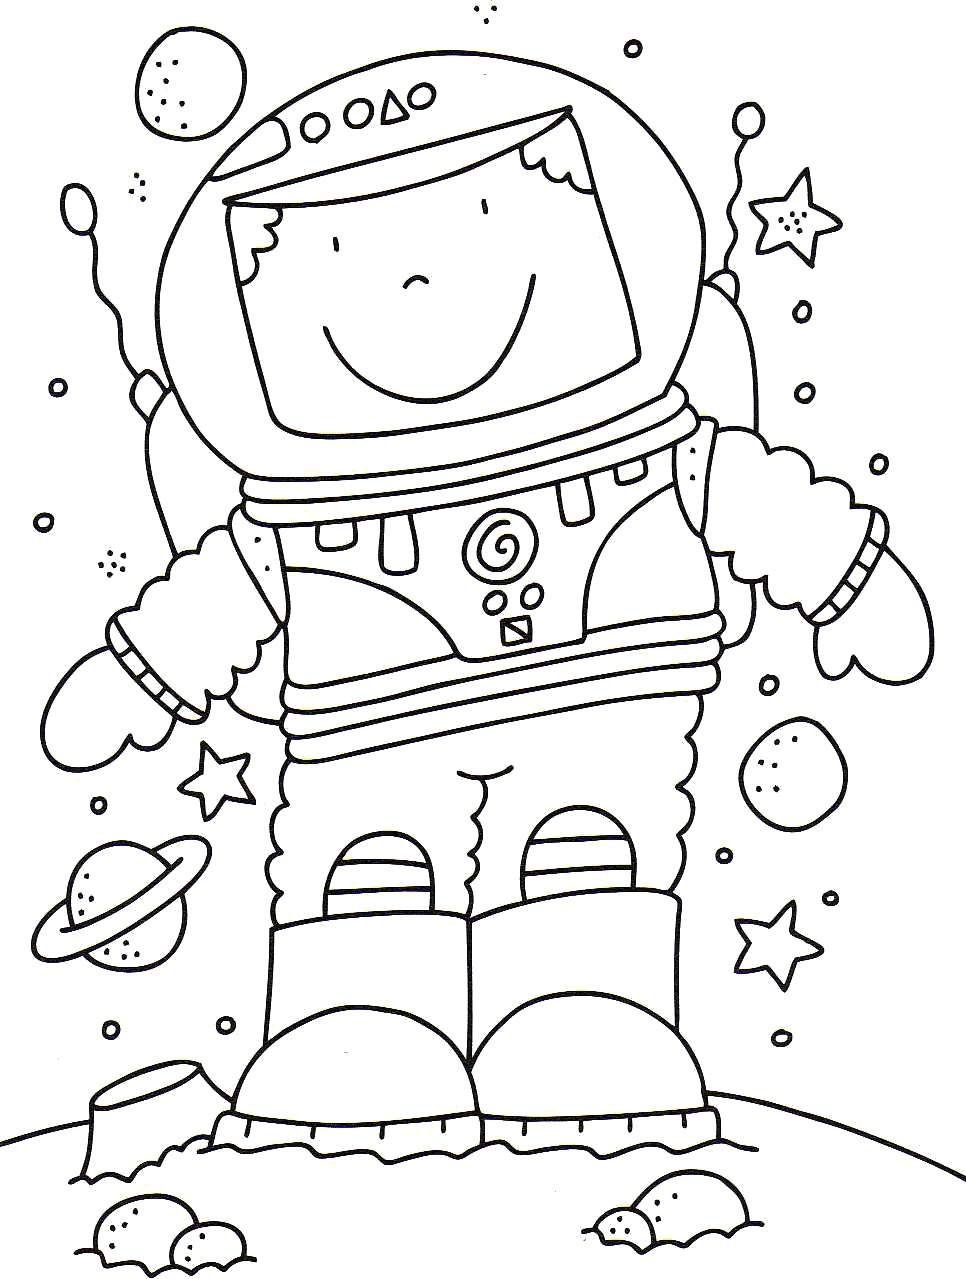 space coloring pages free - photo#41